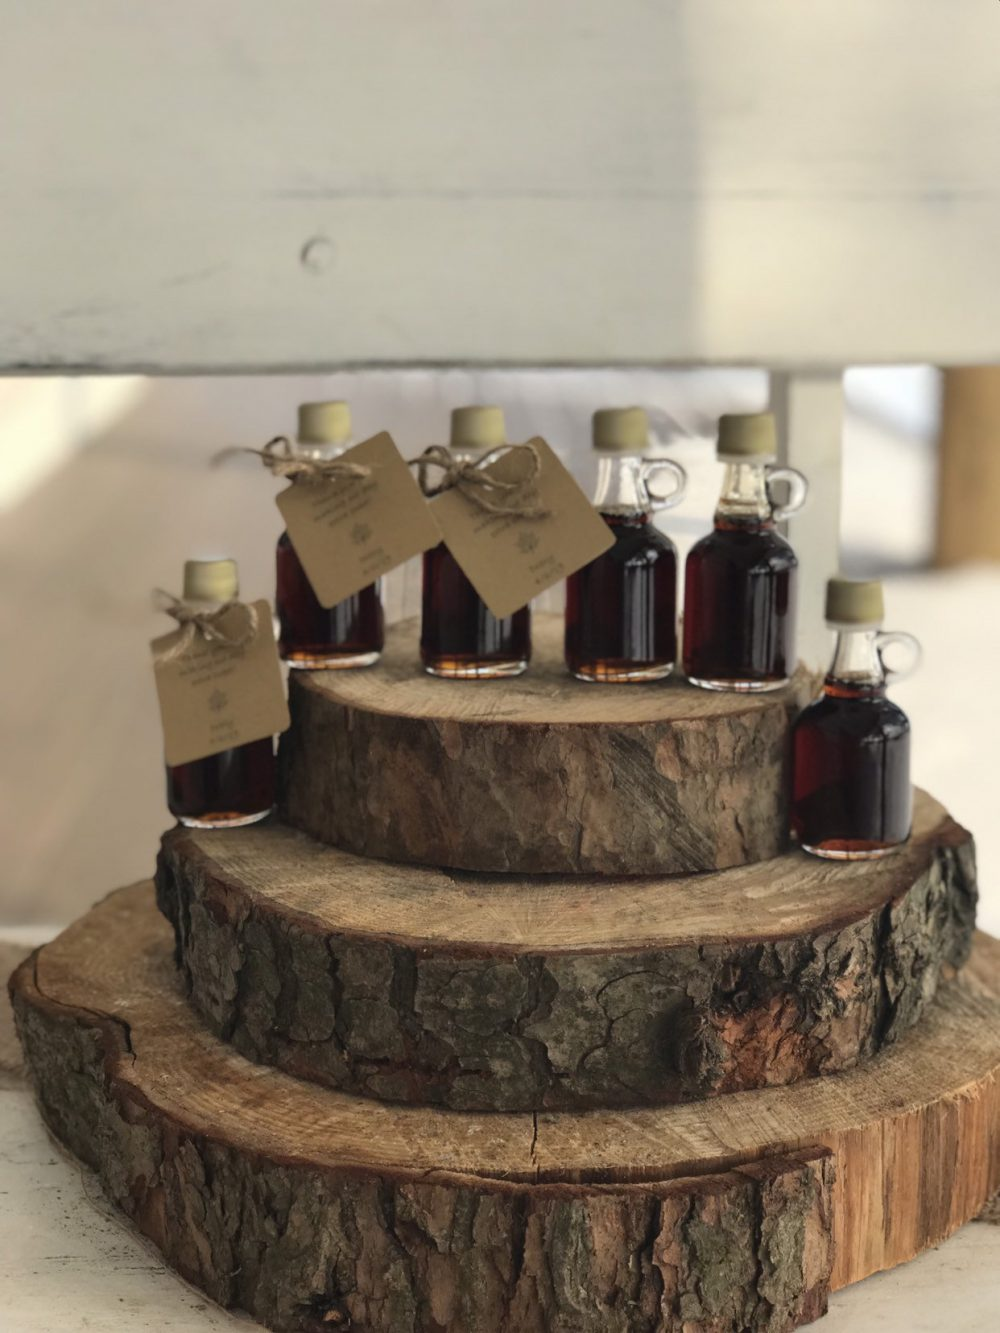 20, Maple Syrup Wedding Favors, Fall Maple Favors, Personalized Favors, Pure Syrup, Rustic Favors, Bridal Shower Favors, Baby Favors